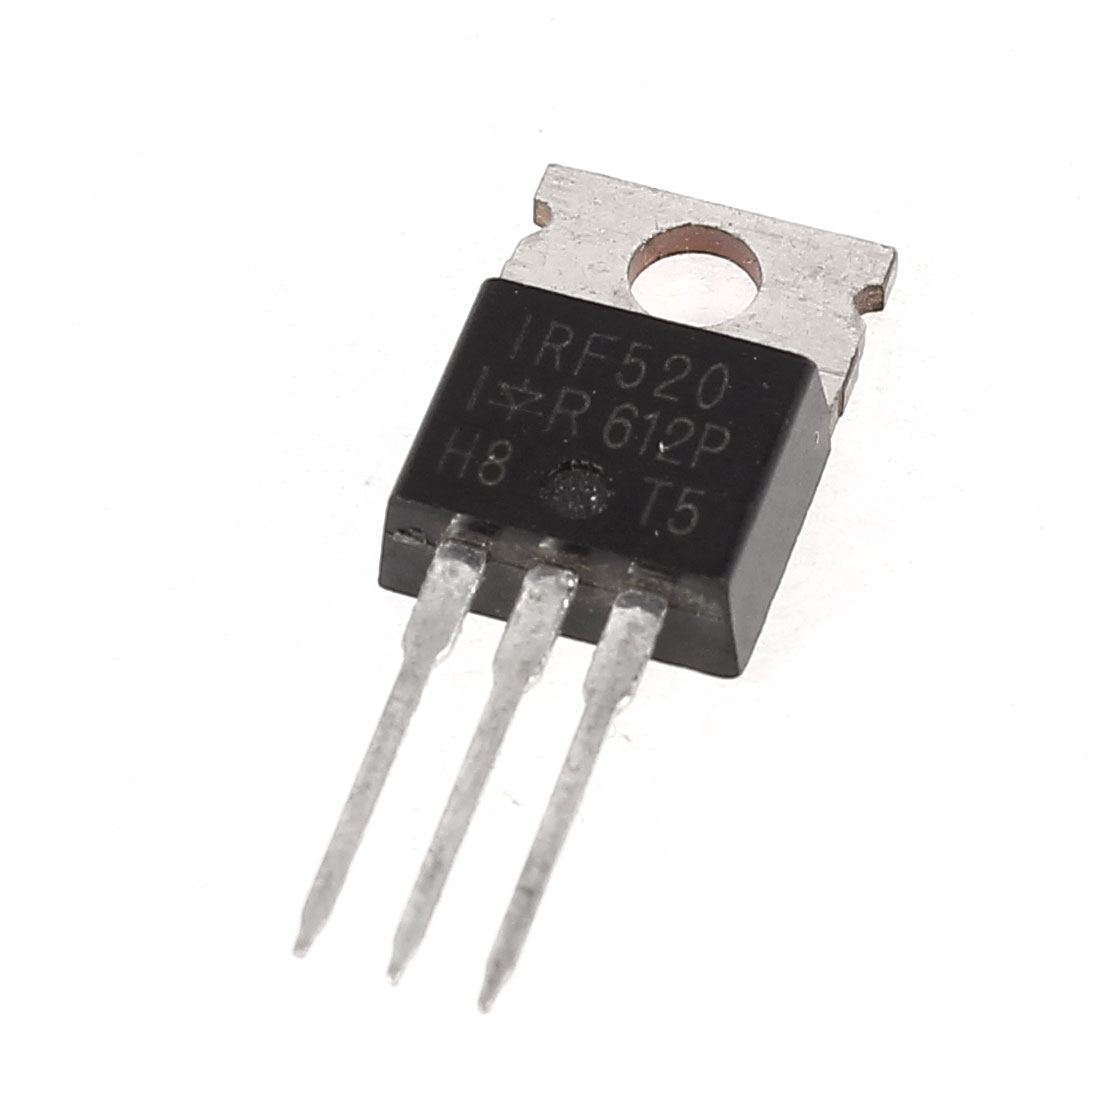 IRF520 Fast Switching Speed Semiconductor NPN Power Transistor 100V 10A